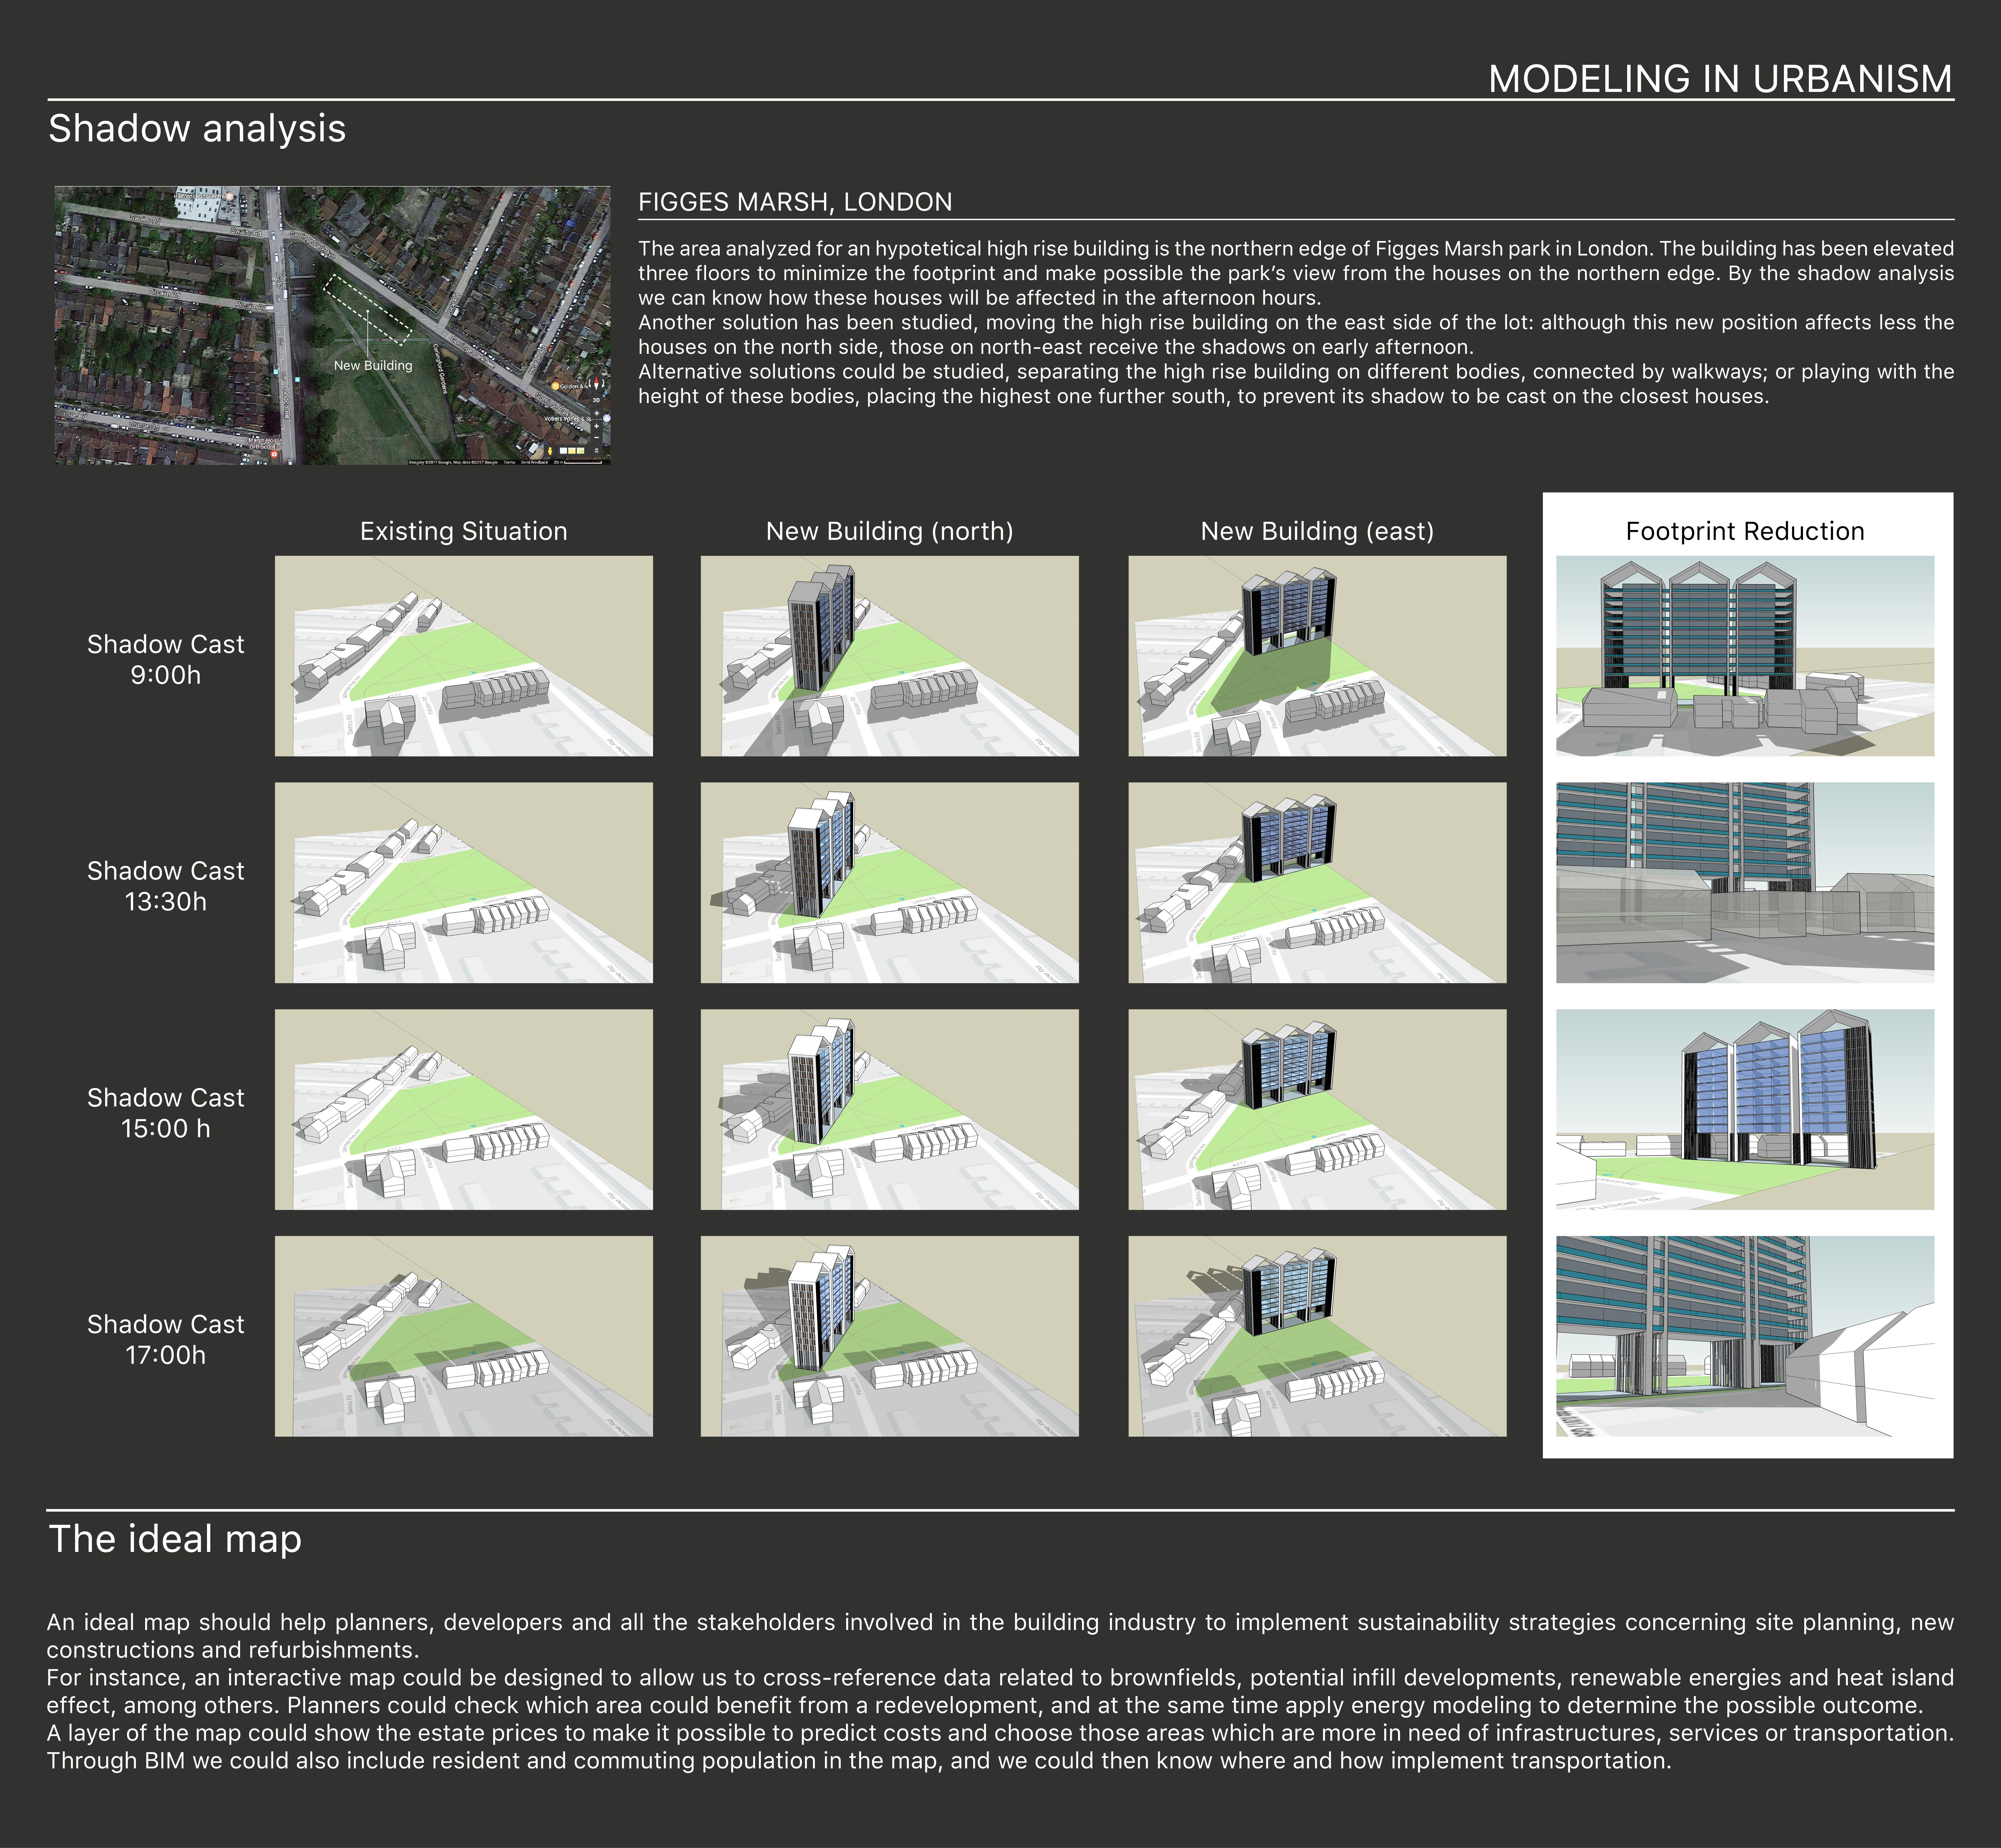 Design for the Public Good - Week 6 - Modeling in Urbanism Shadow study of a high rise building at the edge of Figges Marsh park, London.